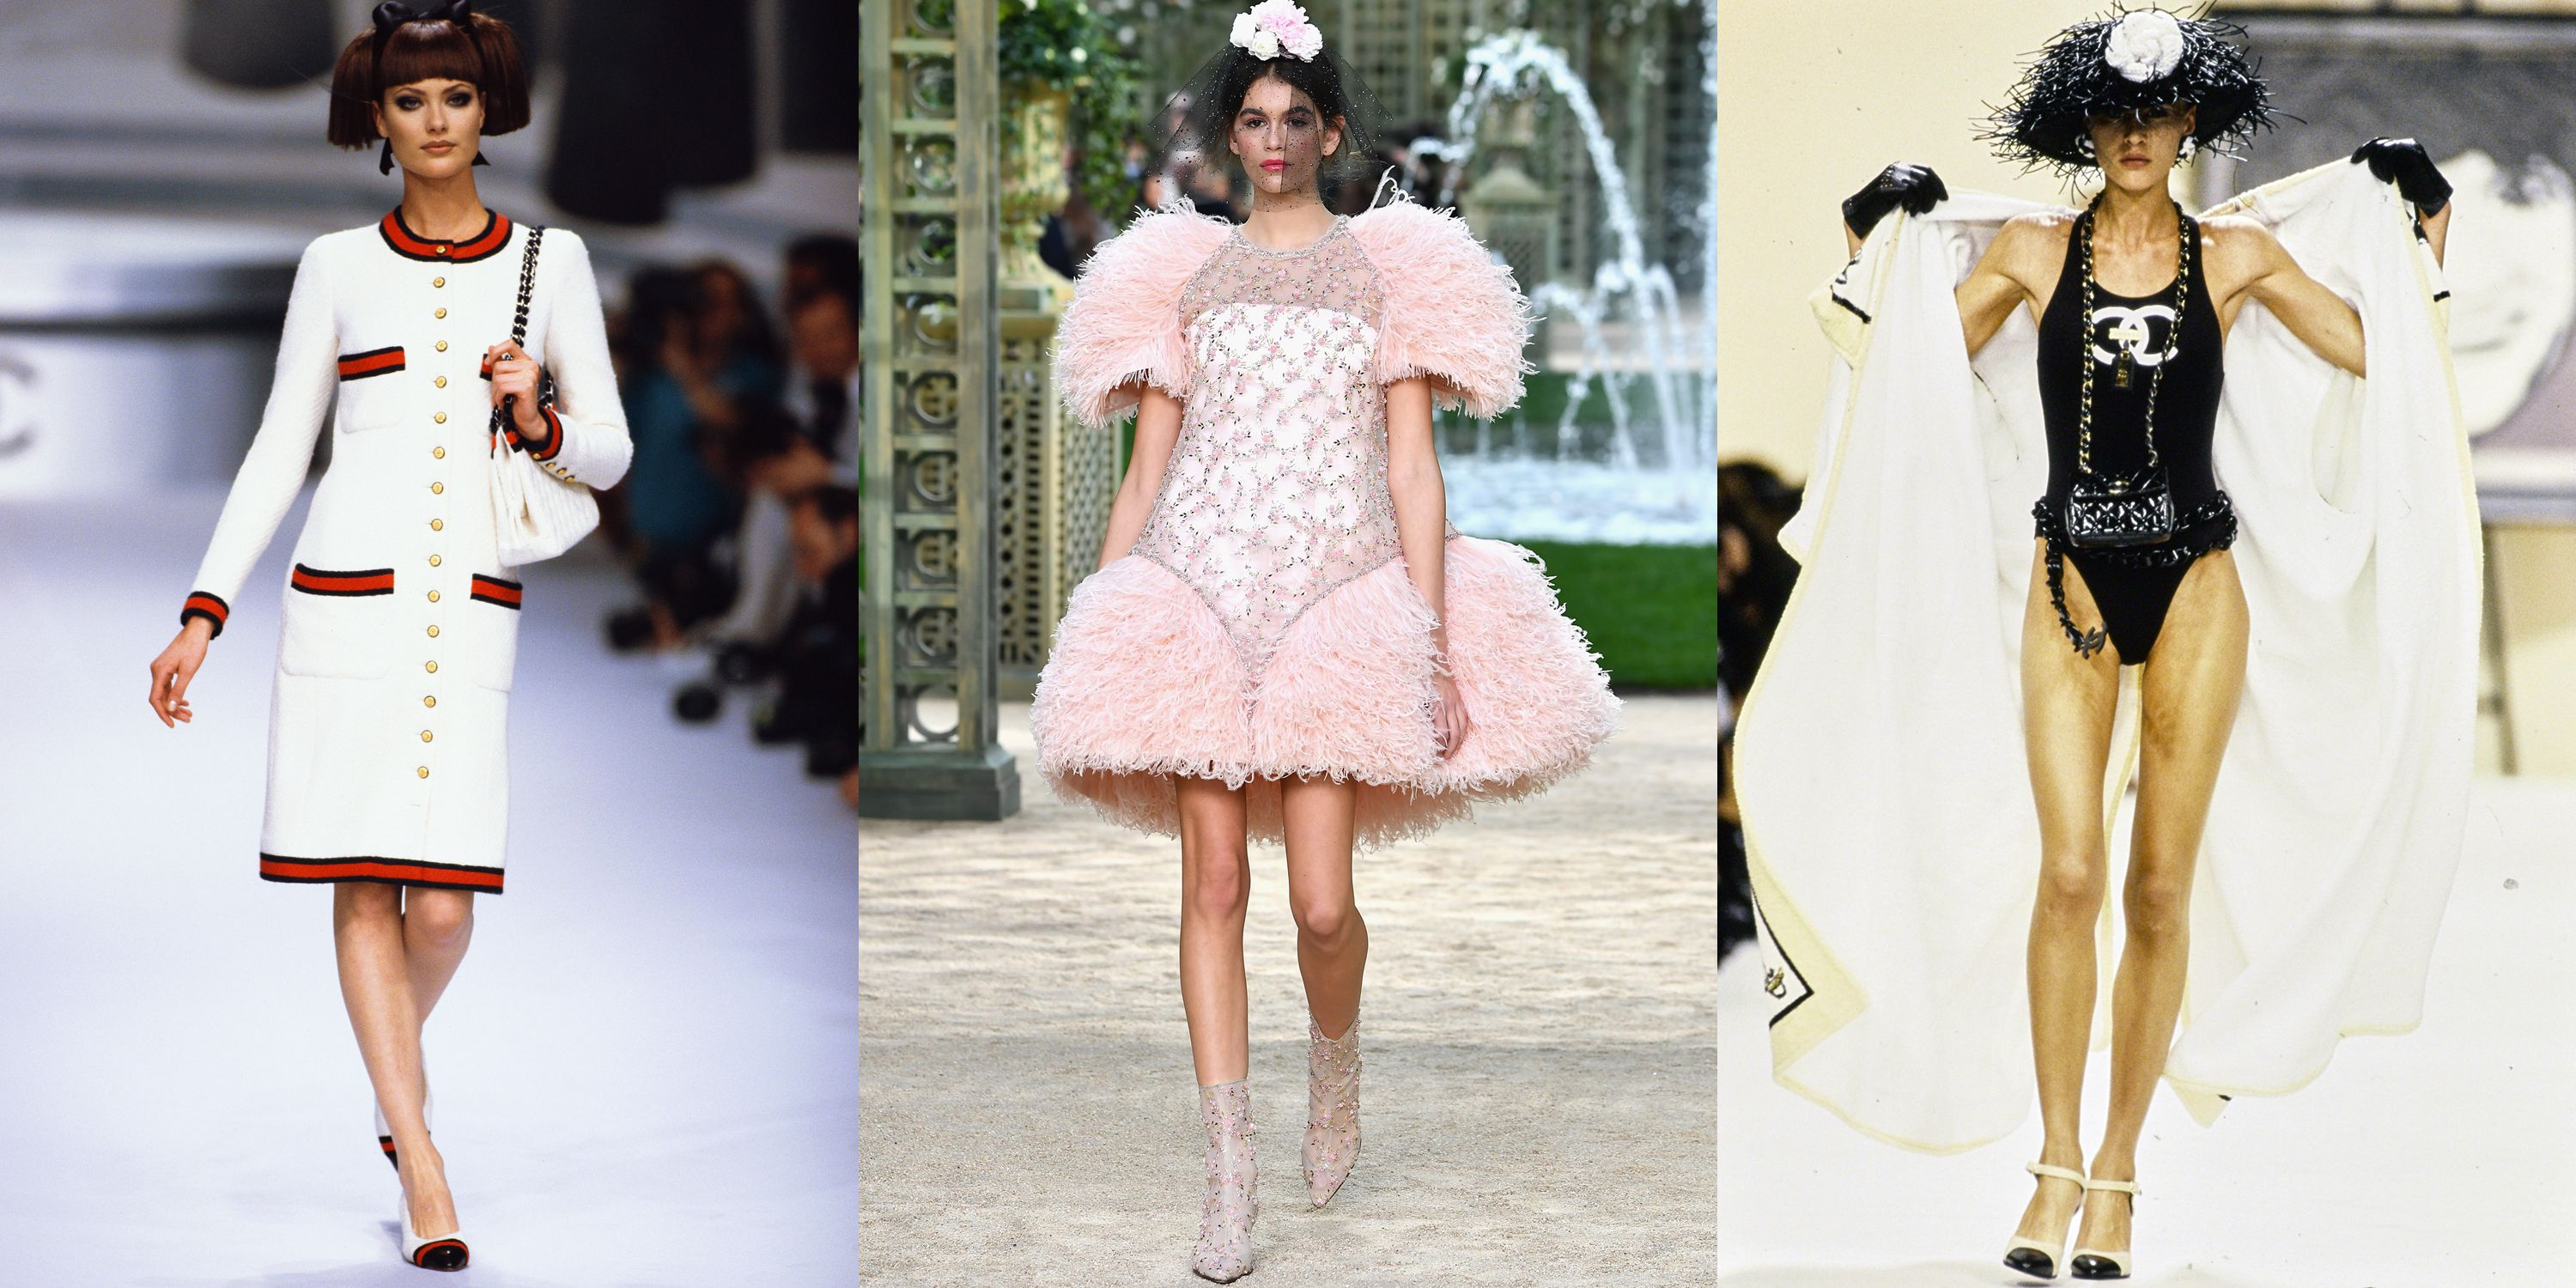 A Look Back at Karl Lagerfeld's Most Iconic Chanel Runway Looks